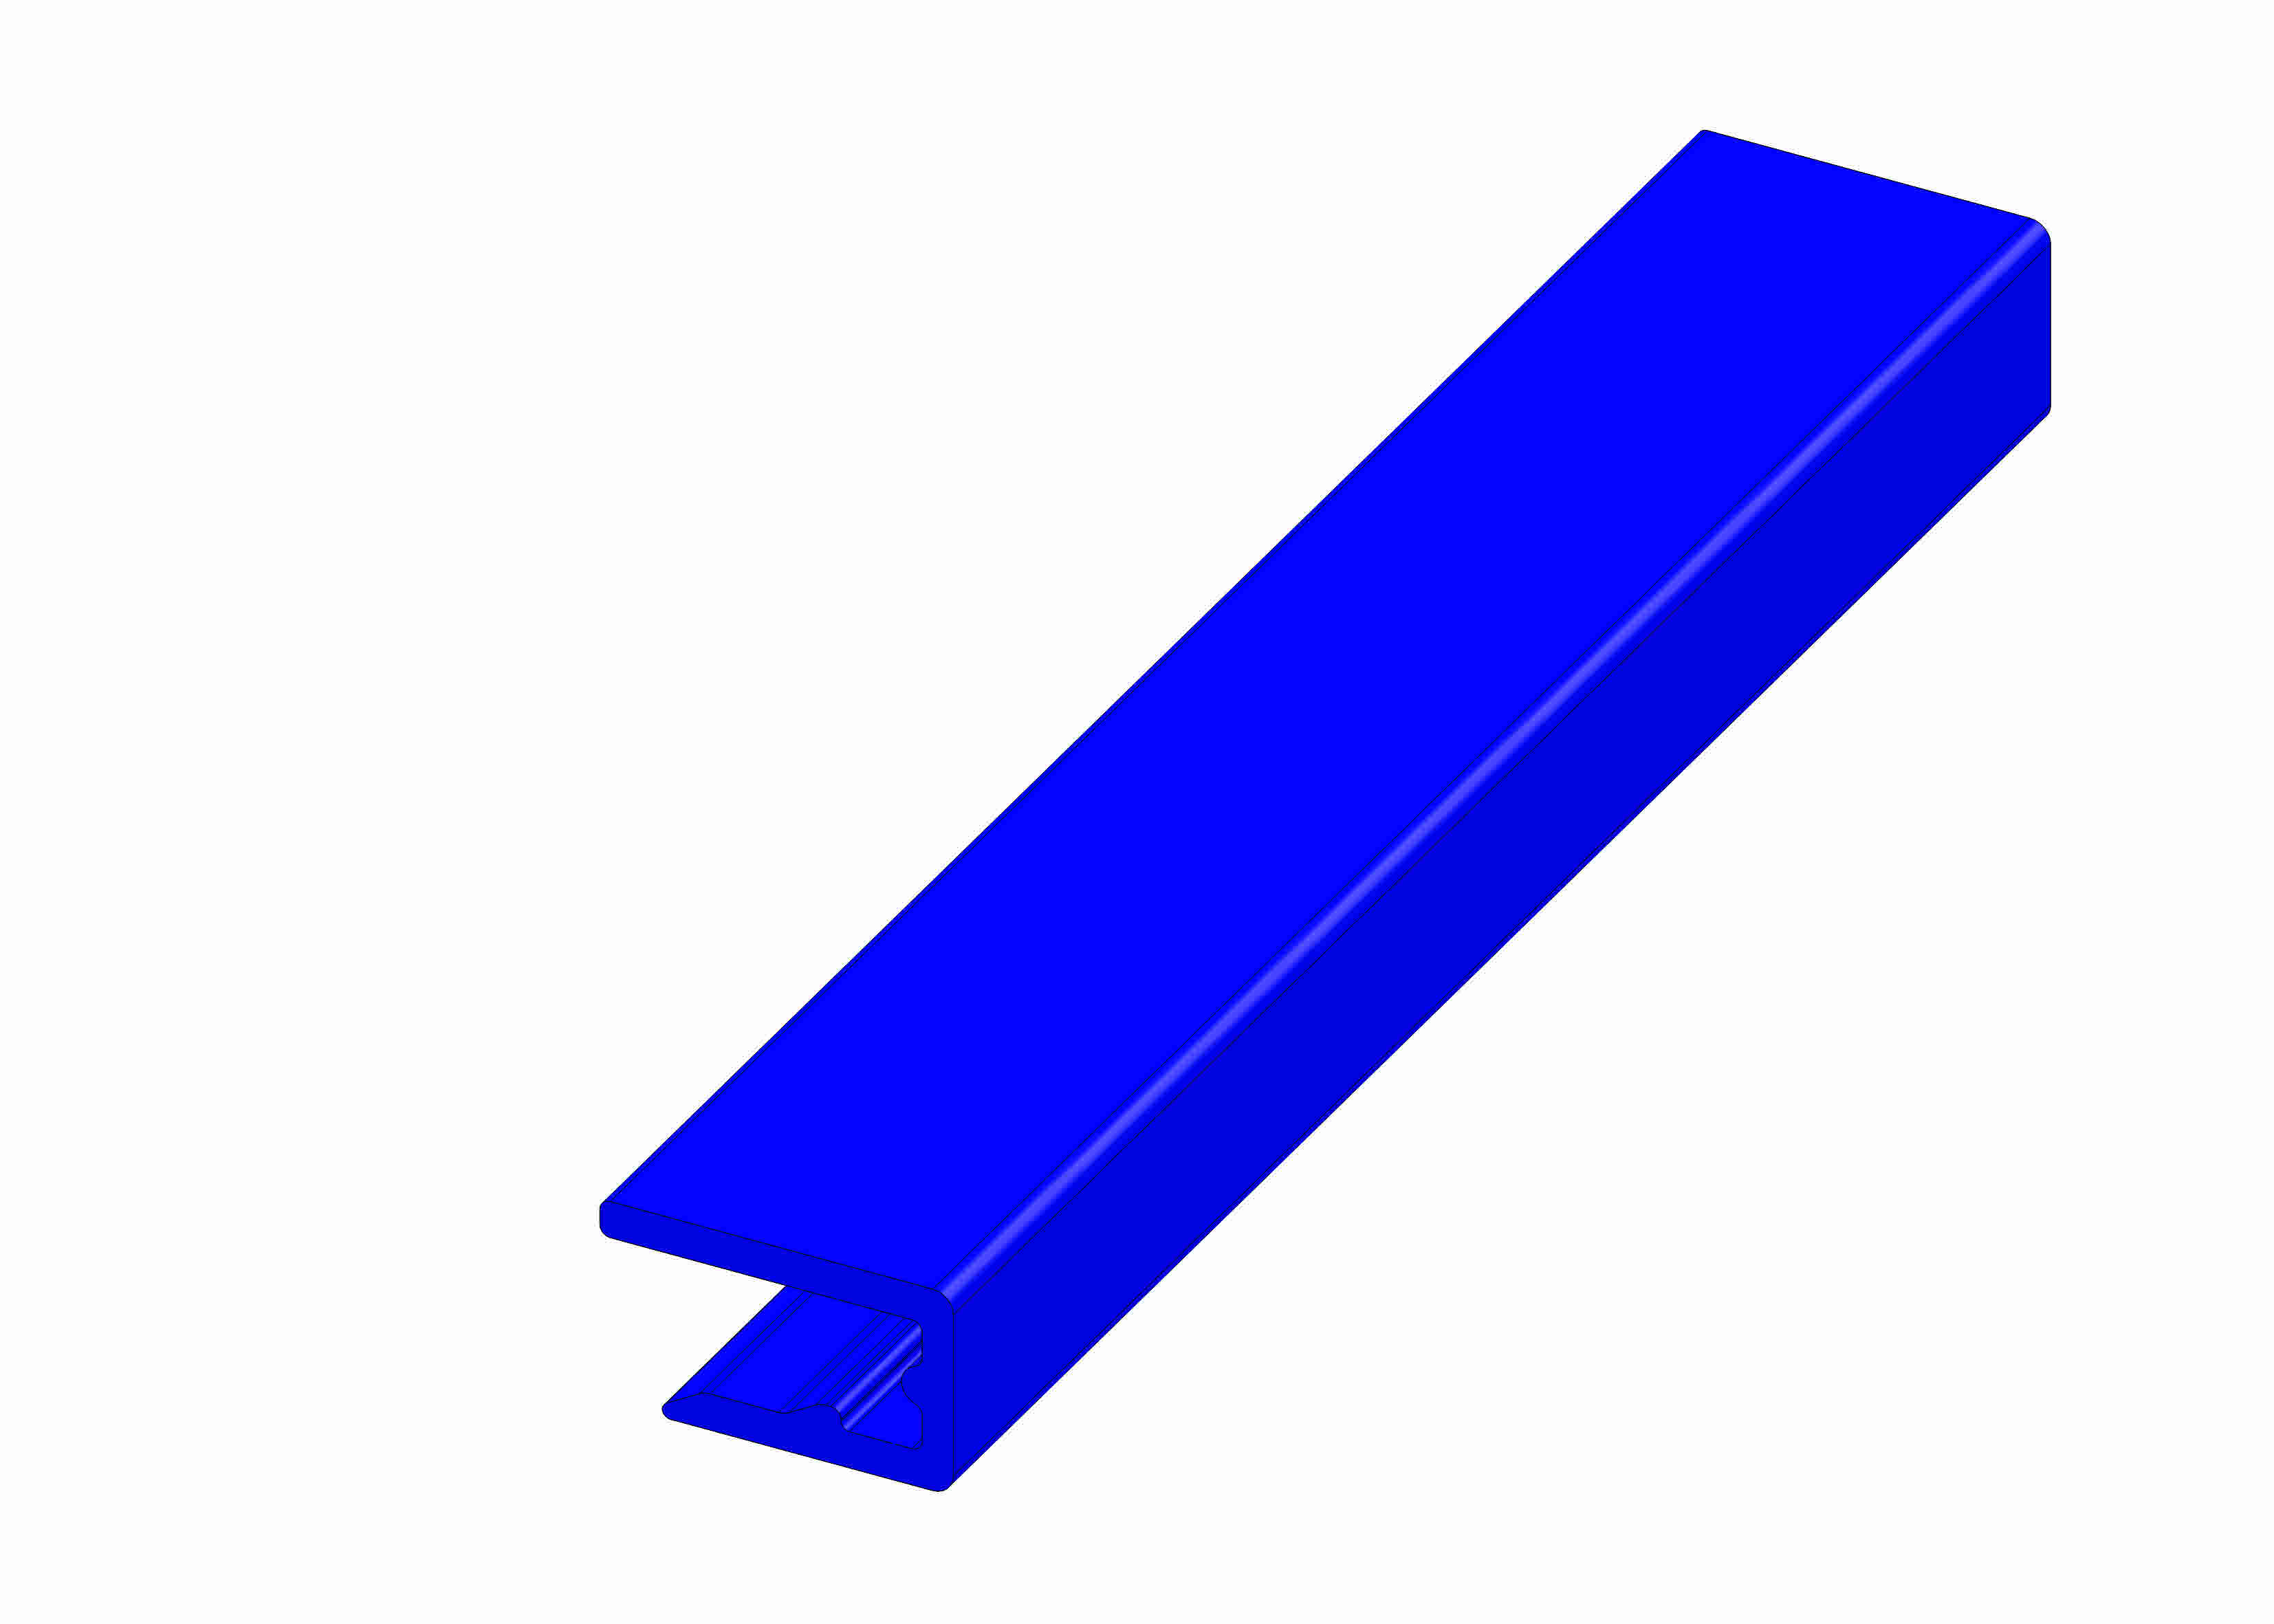 Slide rail blue 10 x 14 B - 55/85/195